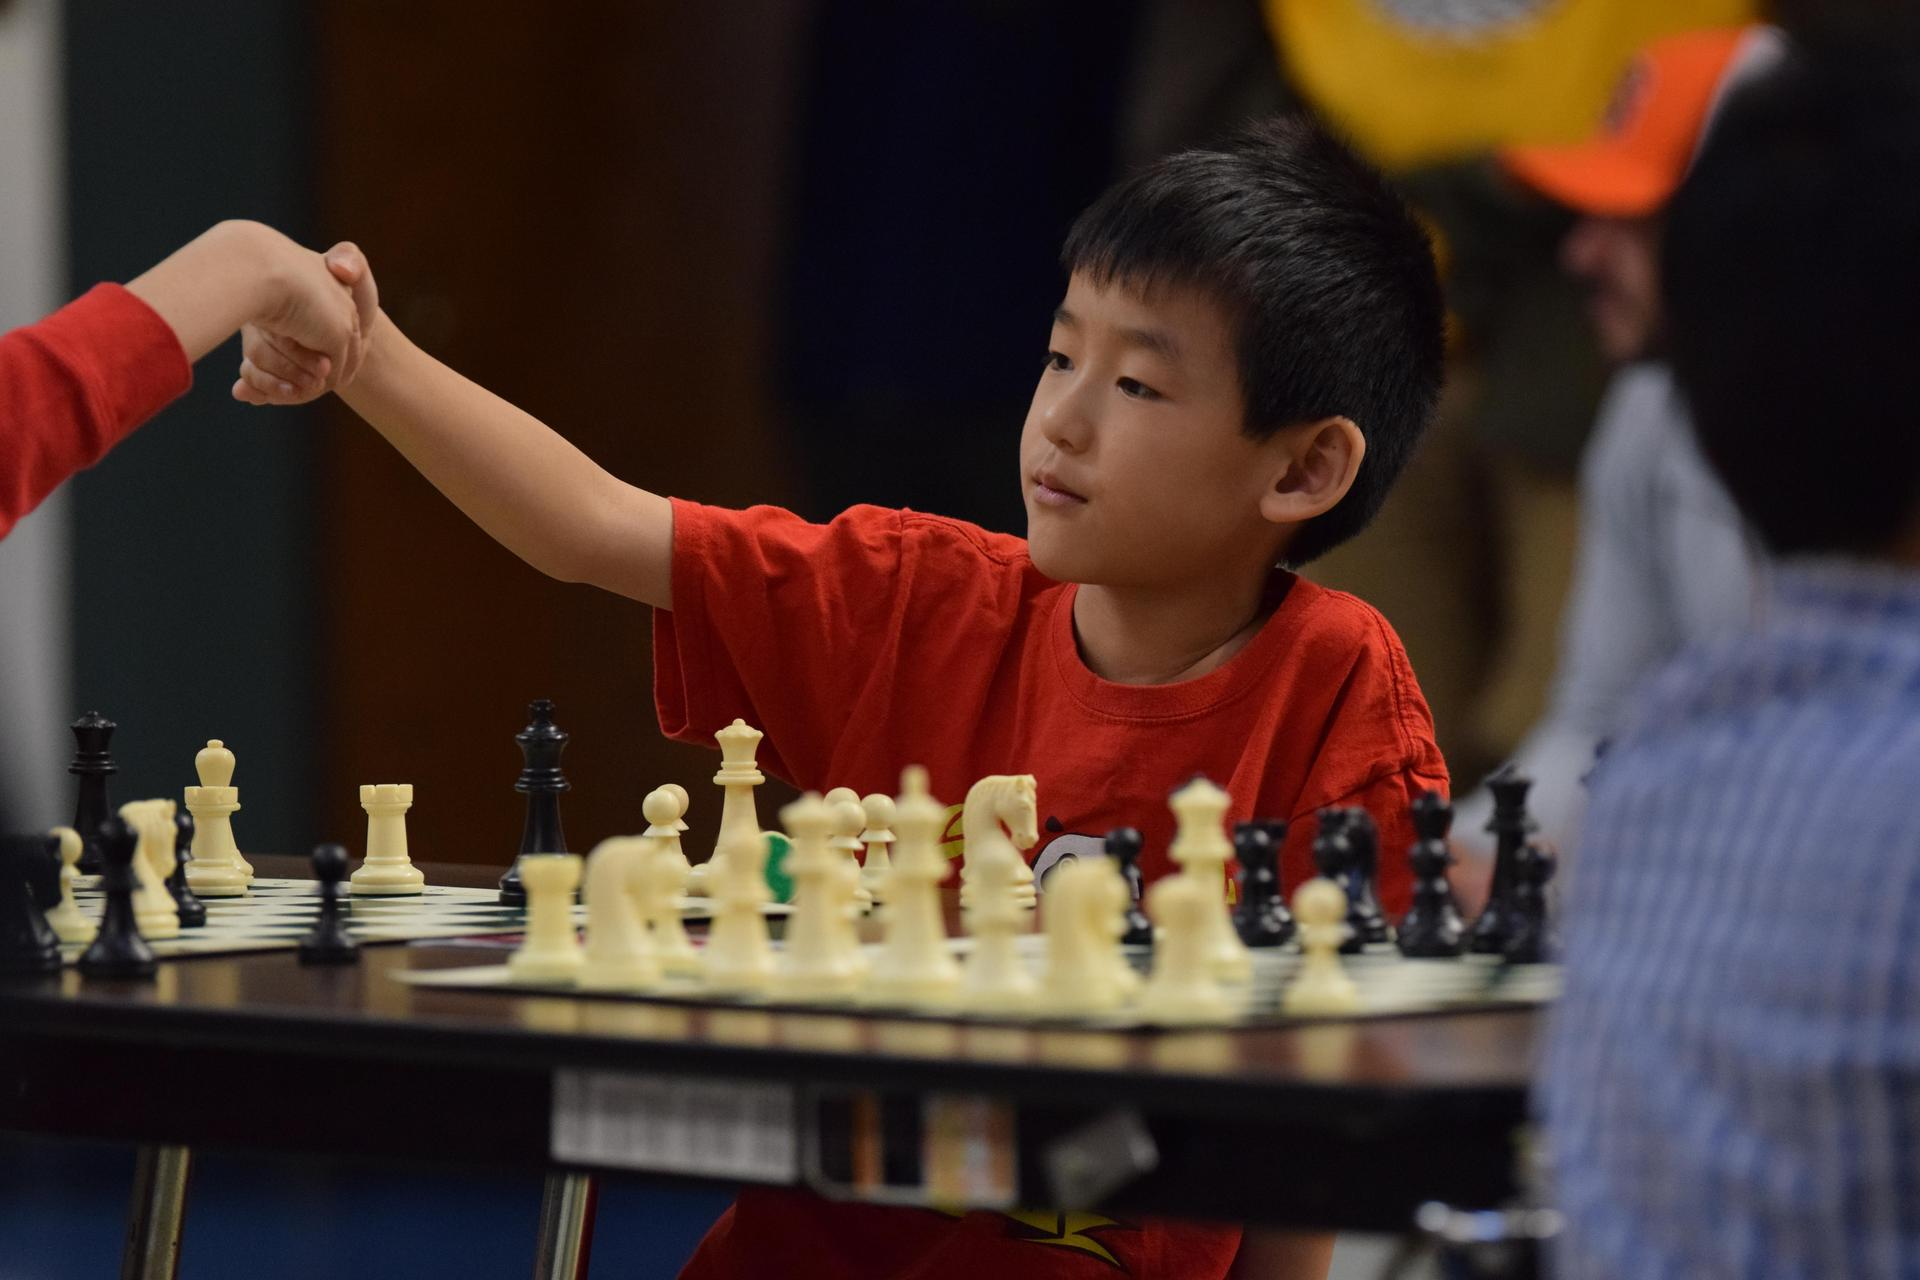 young boy shaking chess opponent's hand